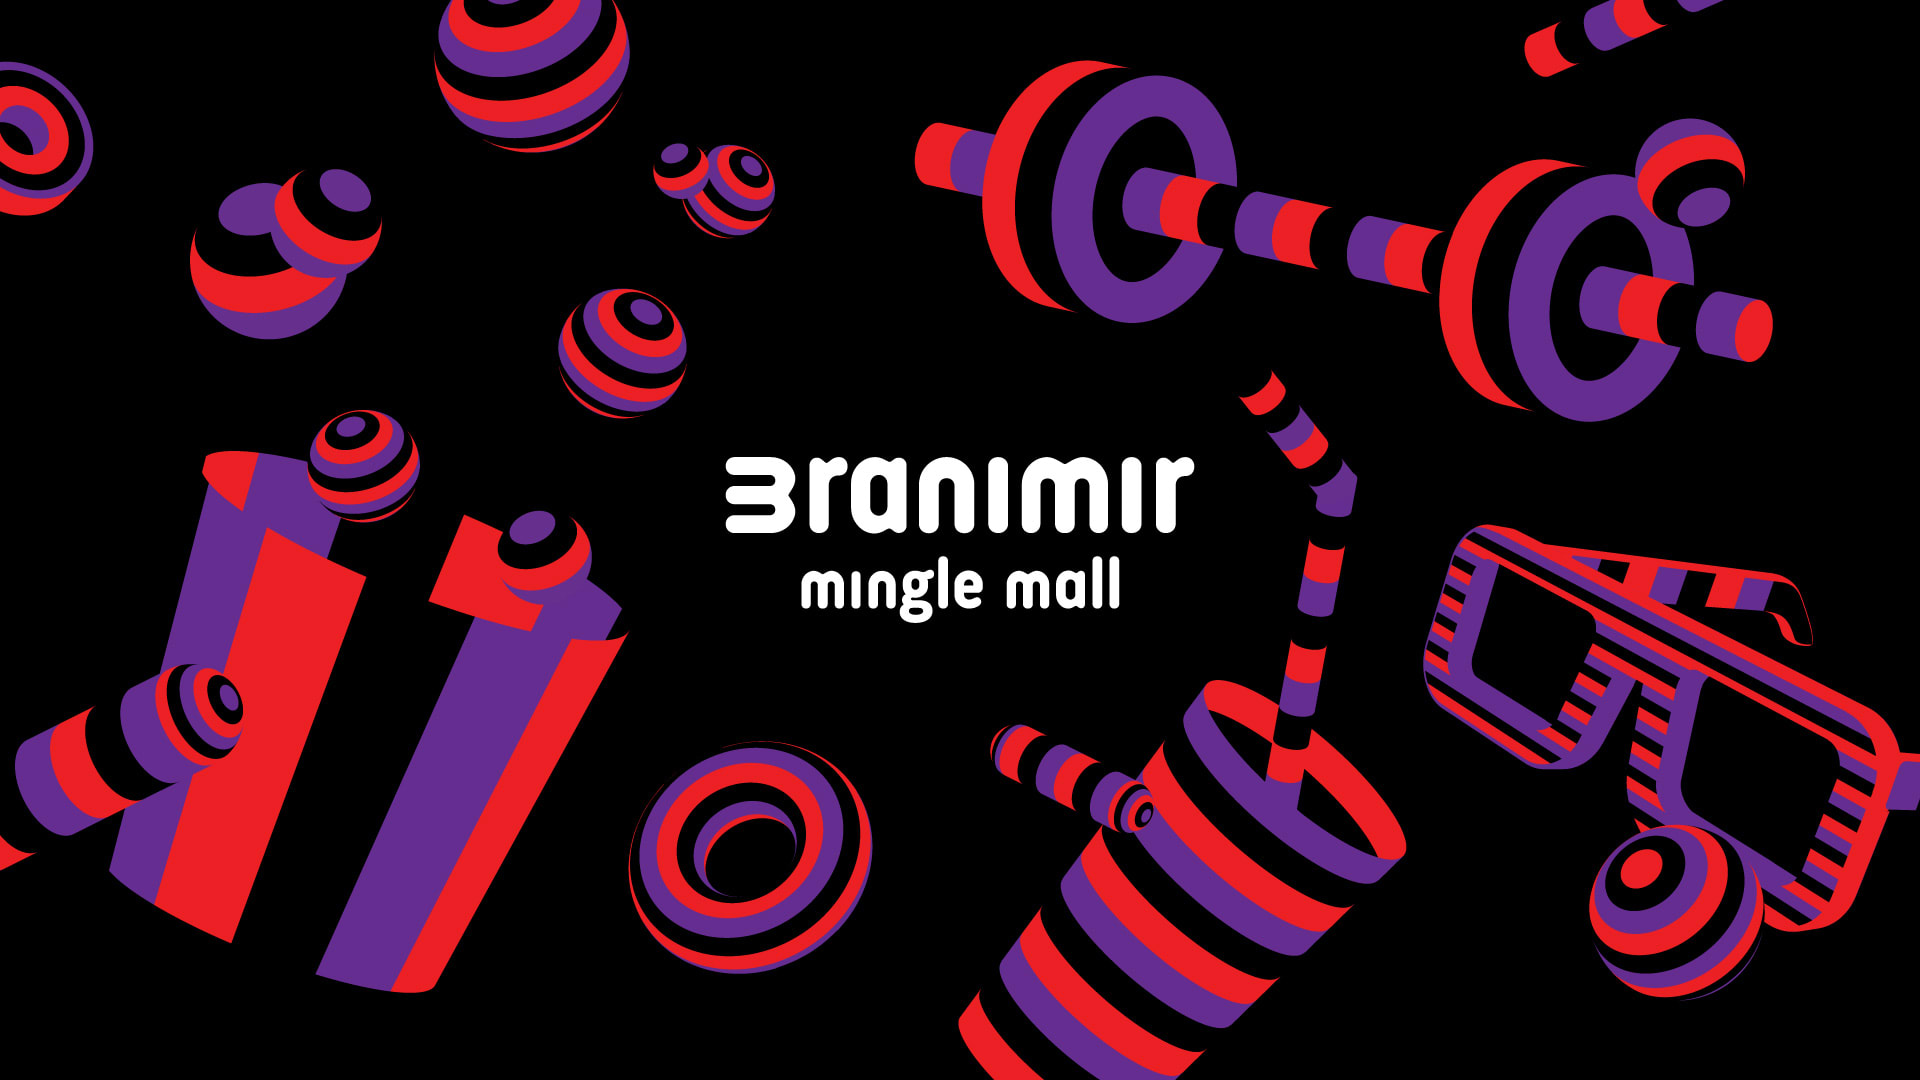 Branimir mingle mall-01